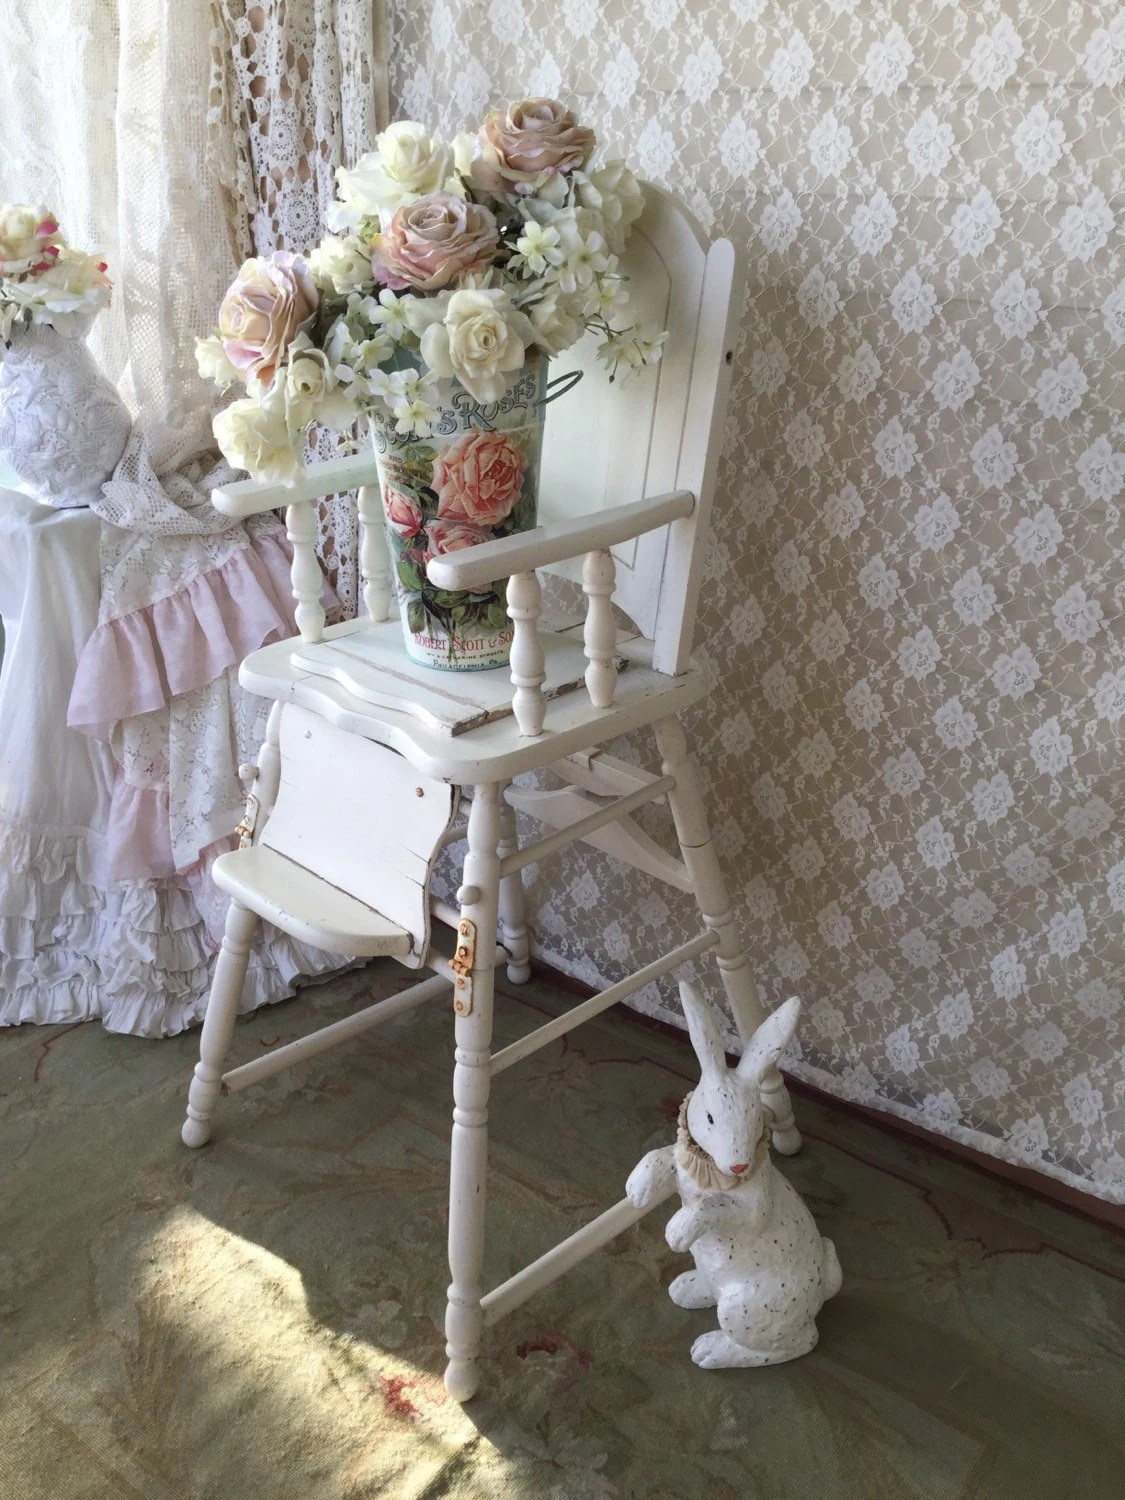 retro high chairs babies wedding chair covers wirral shabby white vintage potty baby